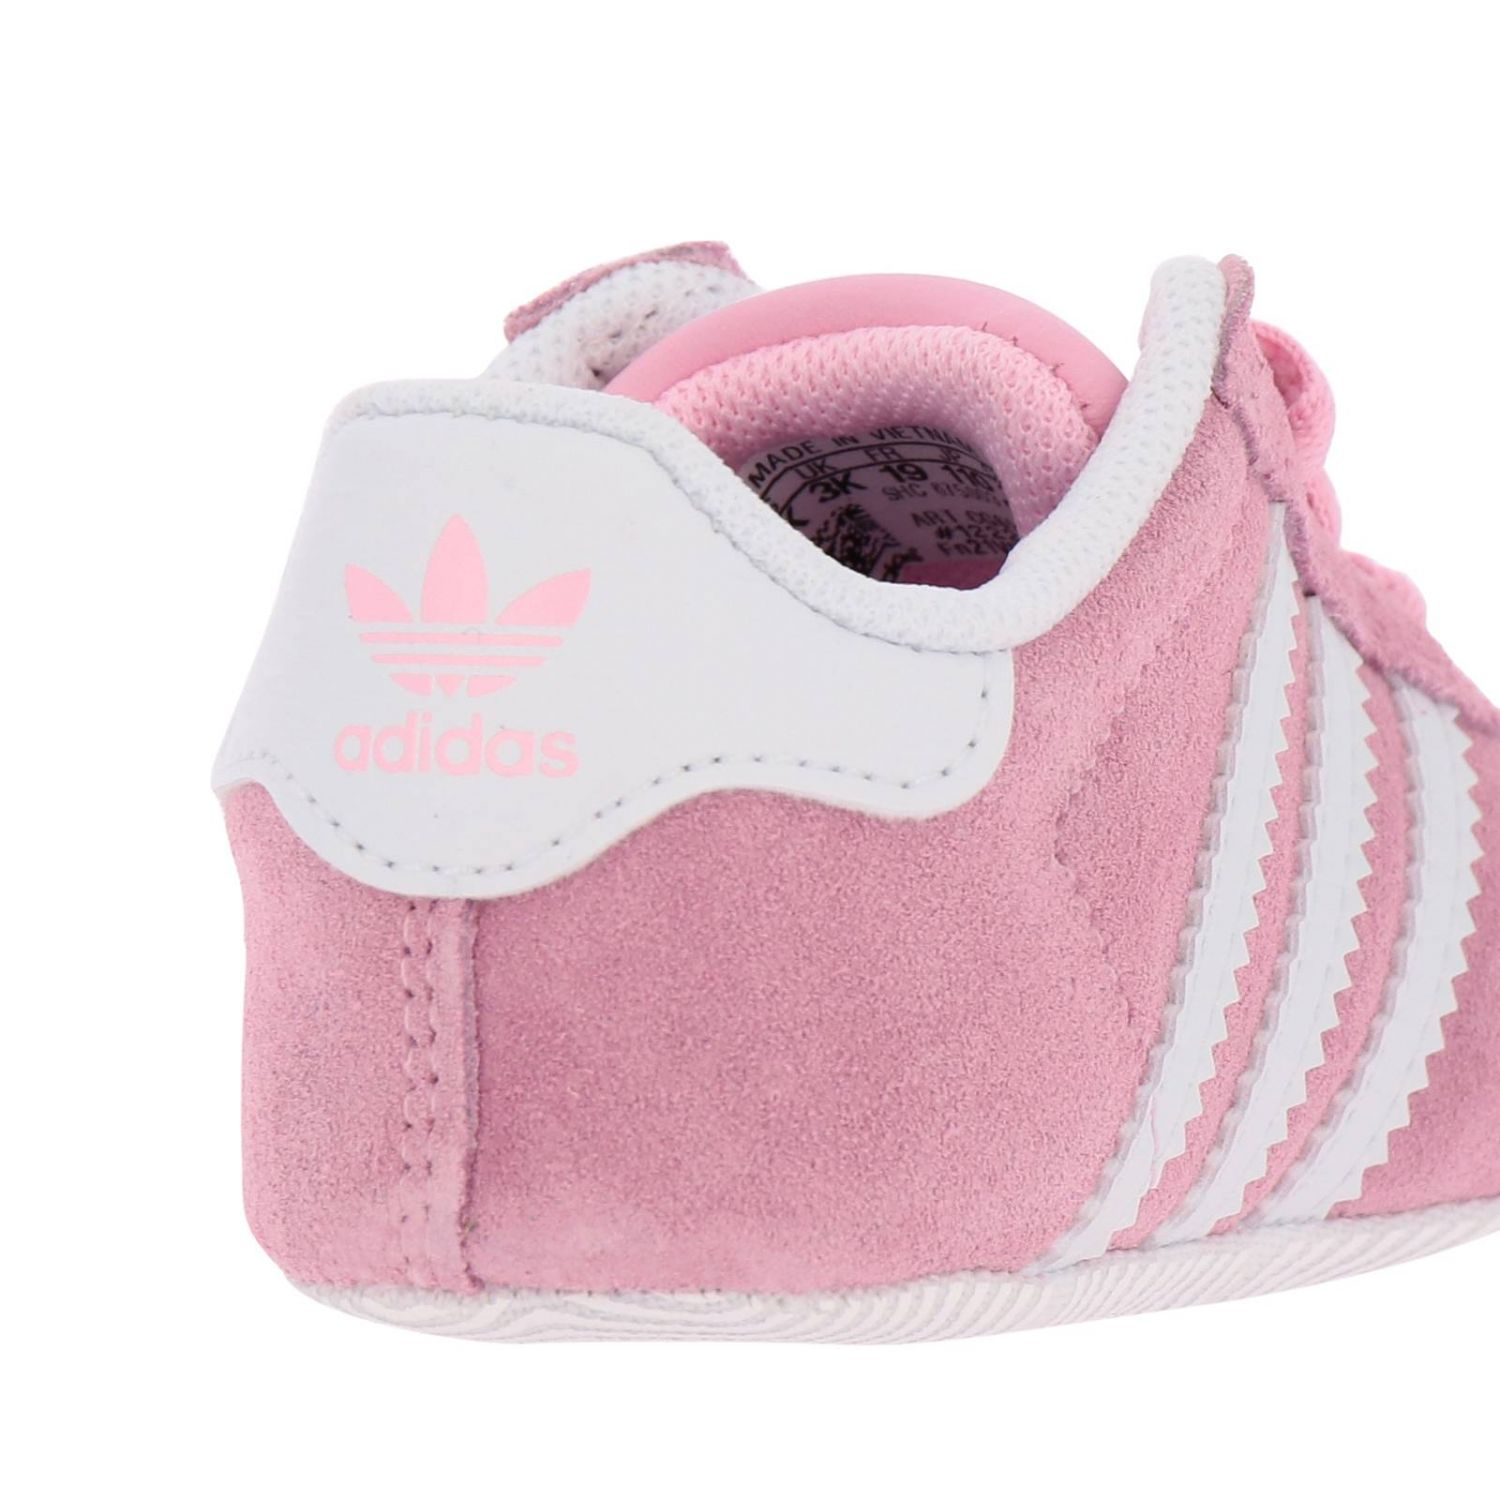 Shoes Adidas Originals: Gazelle Crib Adidas Originals Classic sneakers in suede and smooth leather pink 4